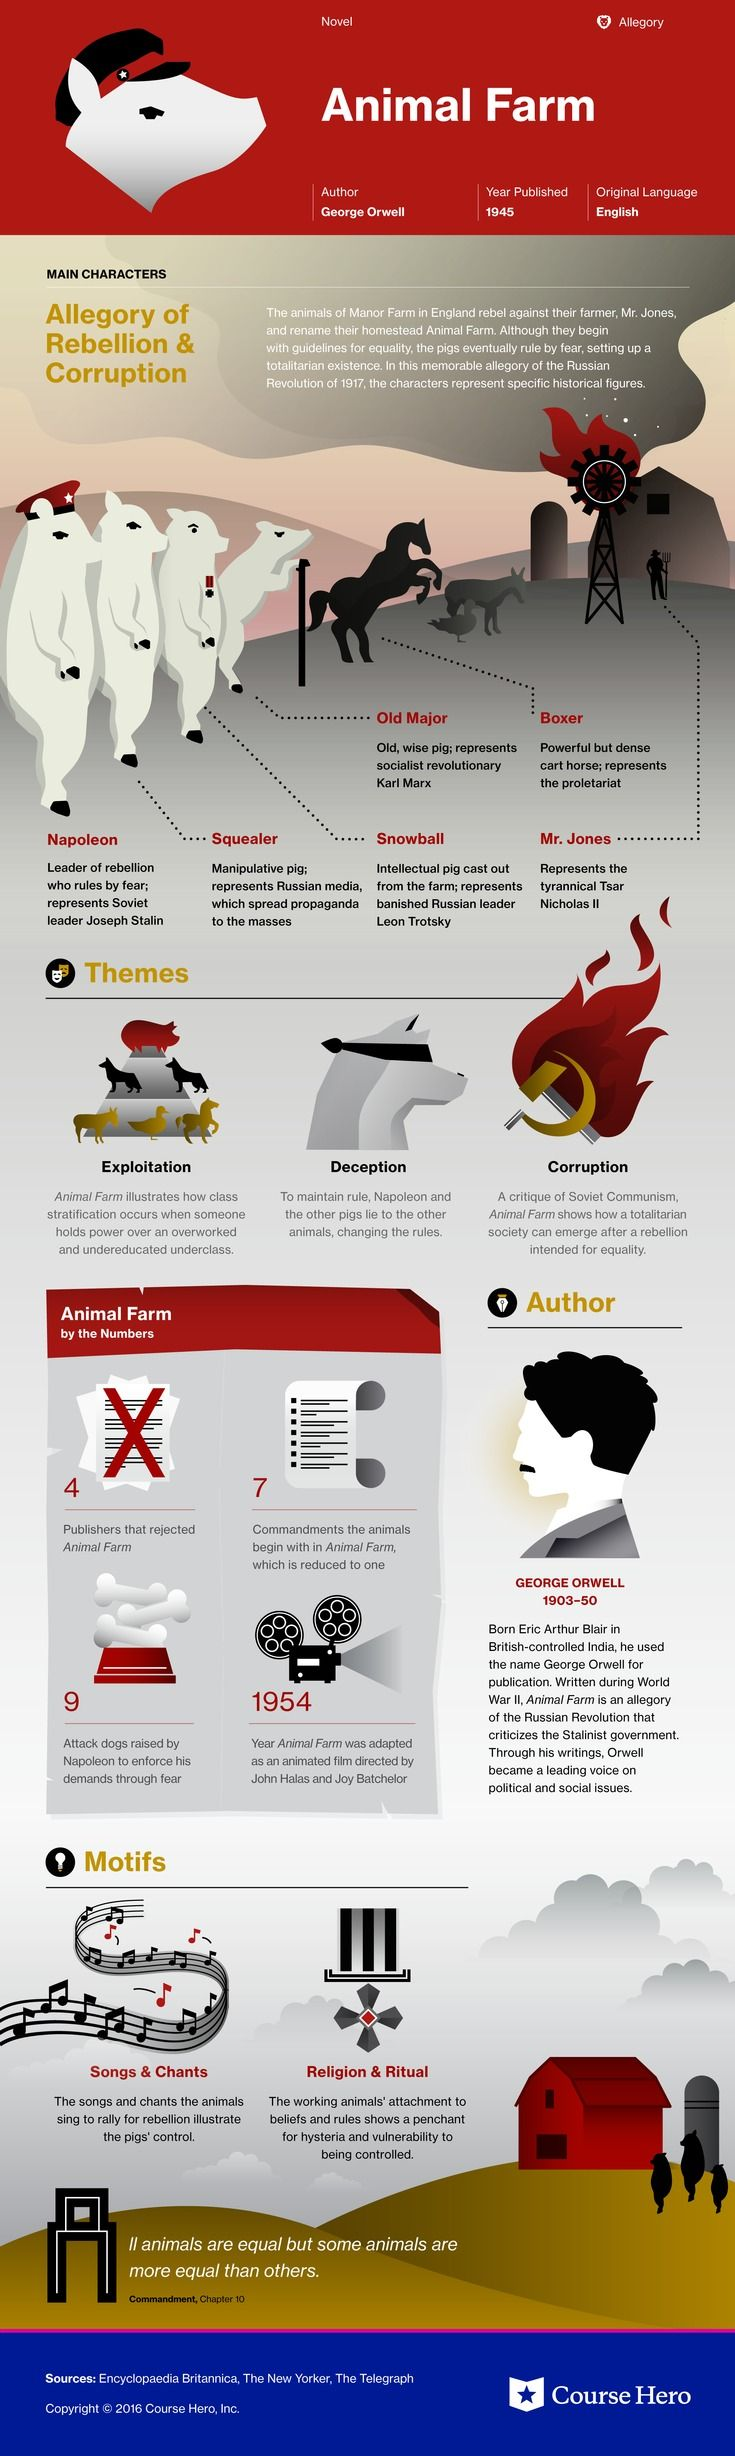 essay questions on animal farm best ideas about animal farm novel  best ideas about animal farm novel animal farm this coursehero infographic on animal farm is both call of the wild essay questions